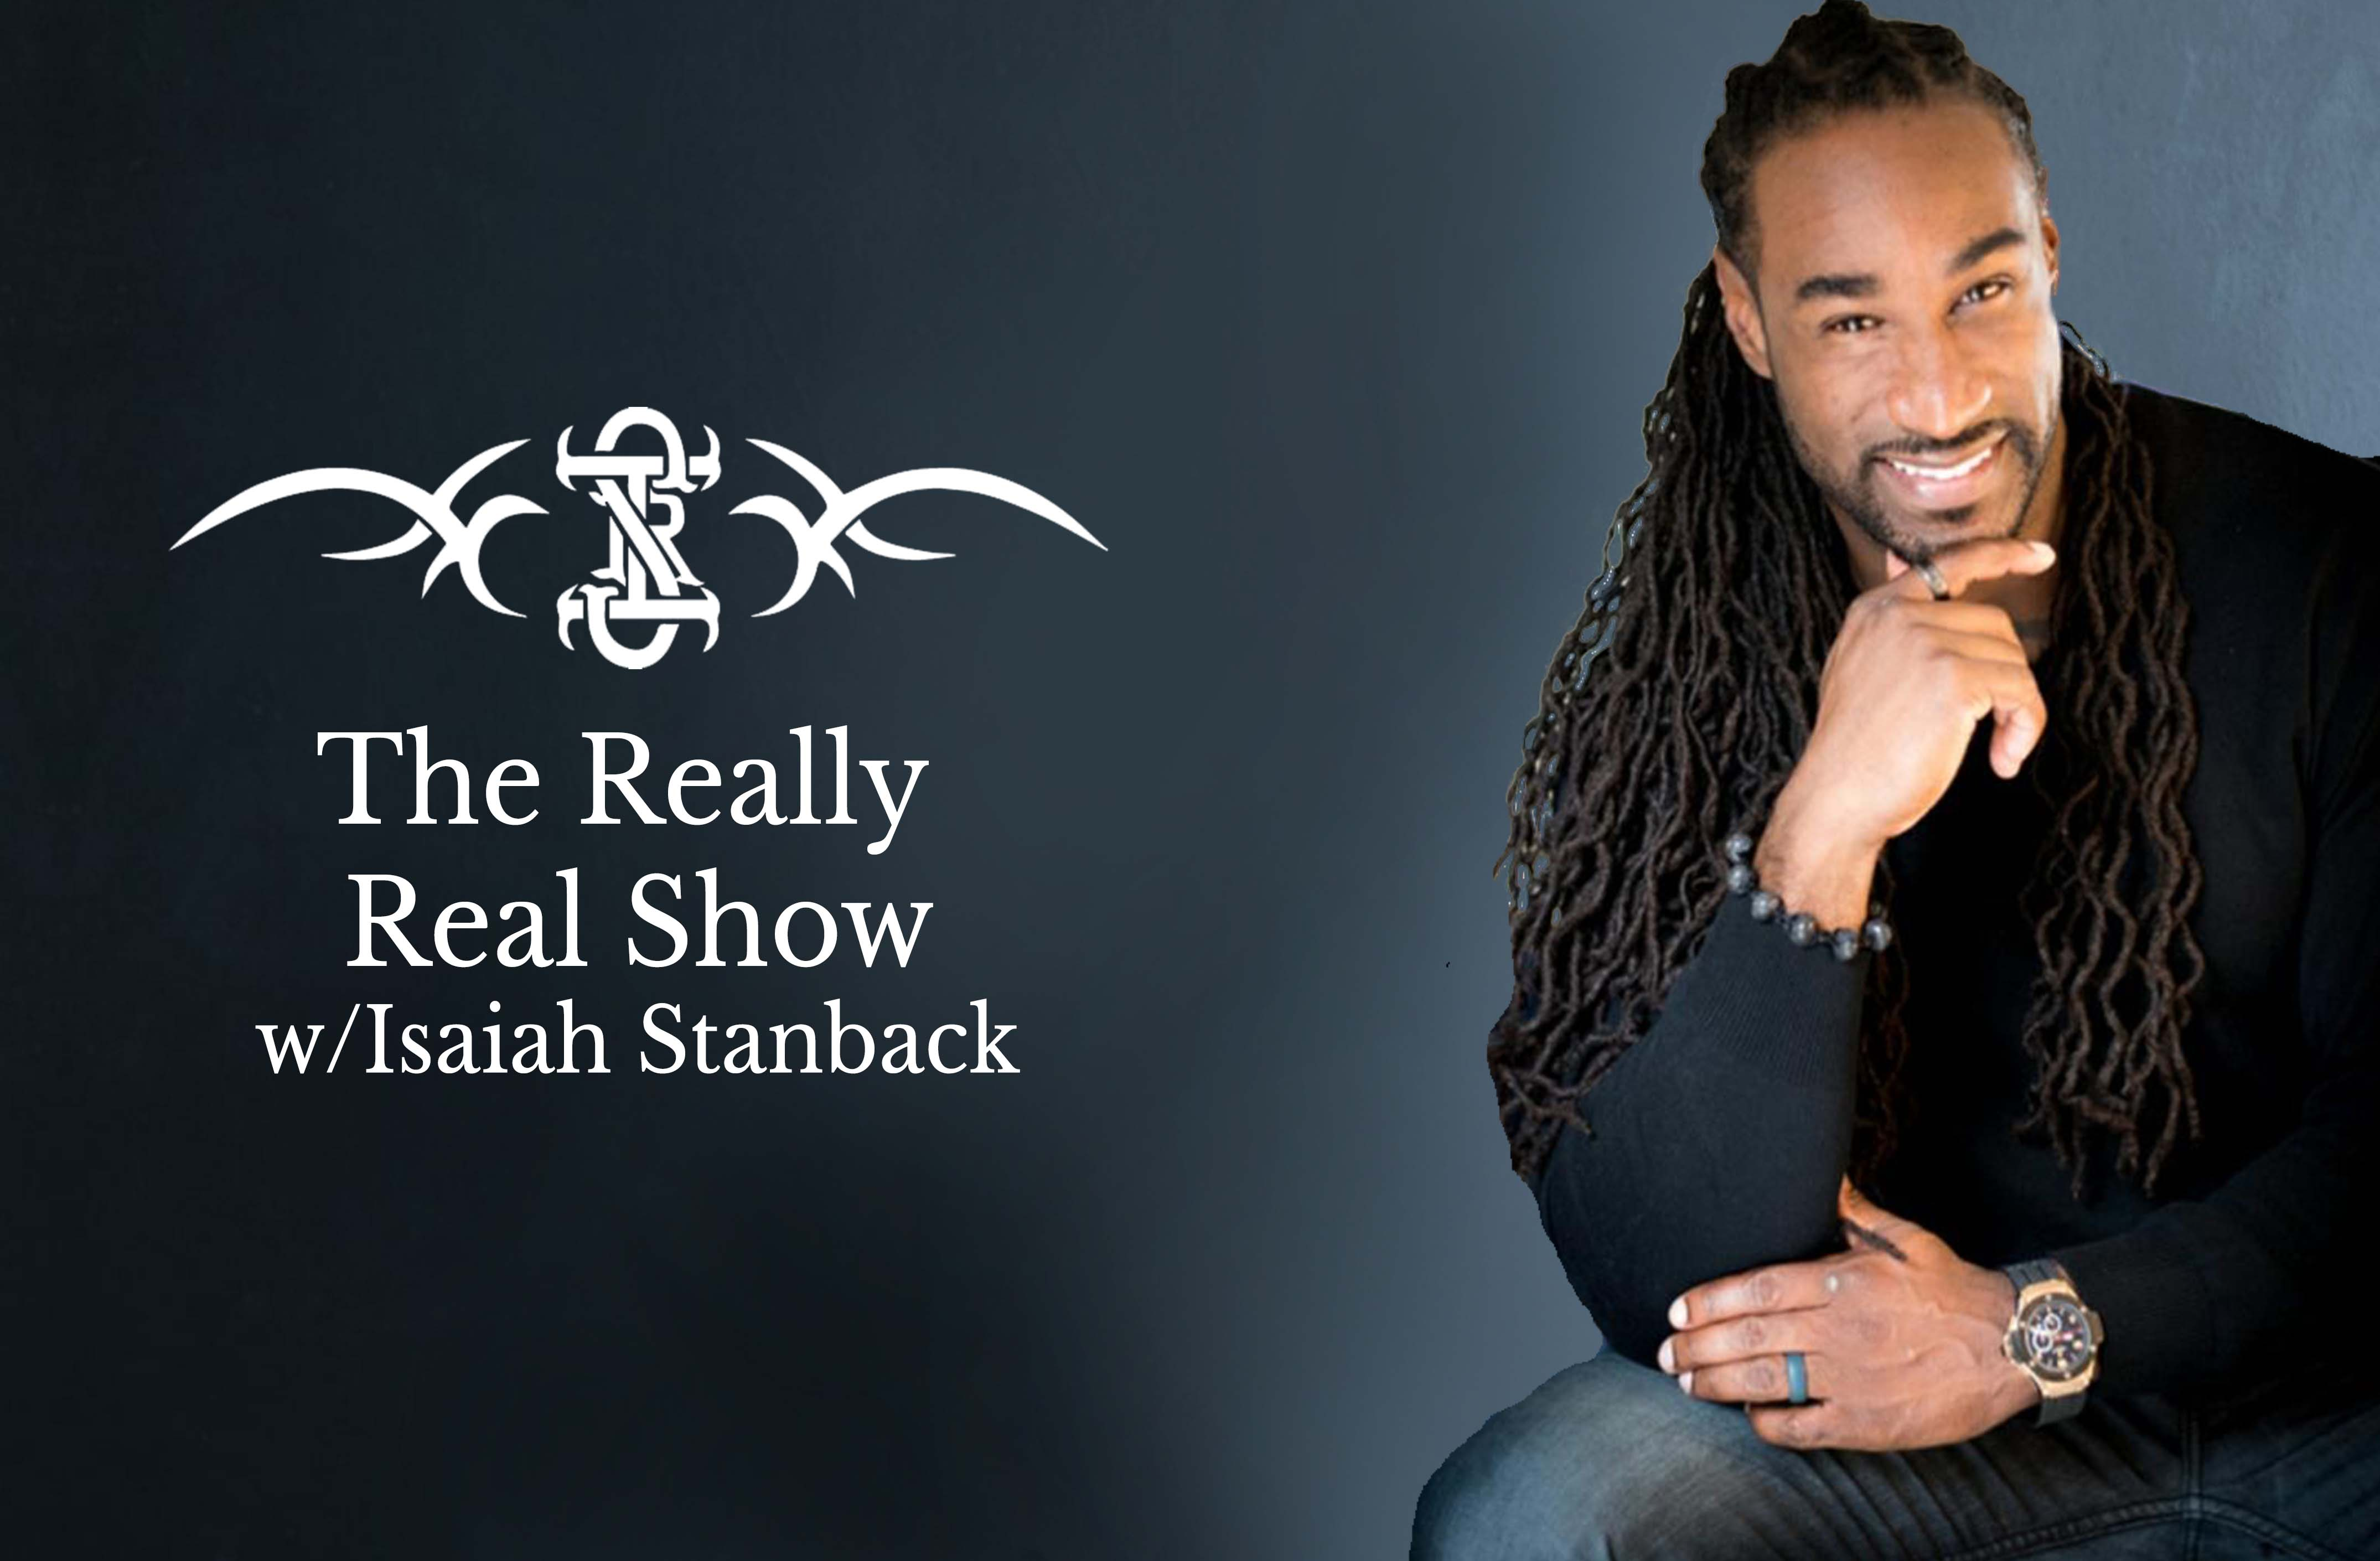 The Really Real Show with Isaiah Stanback